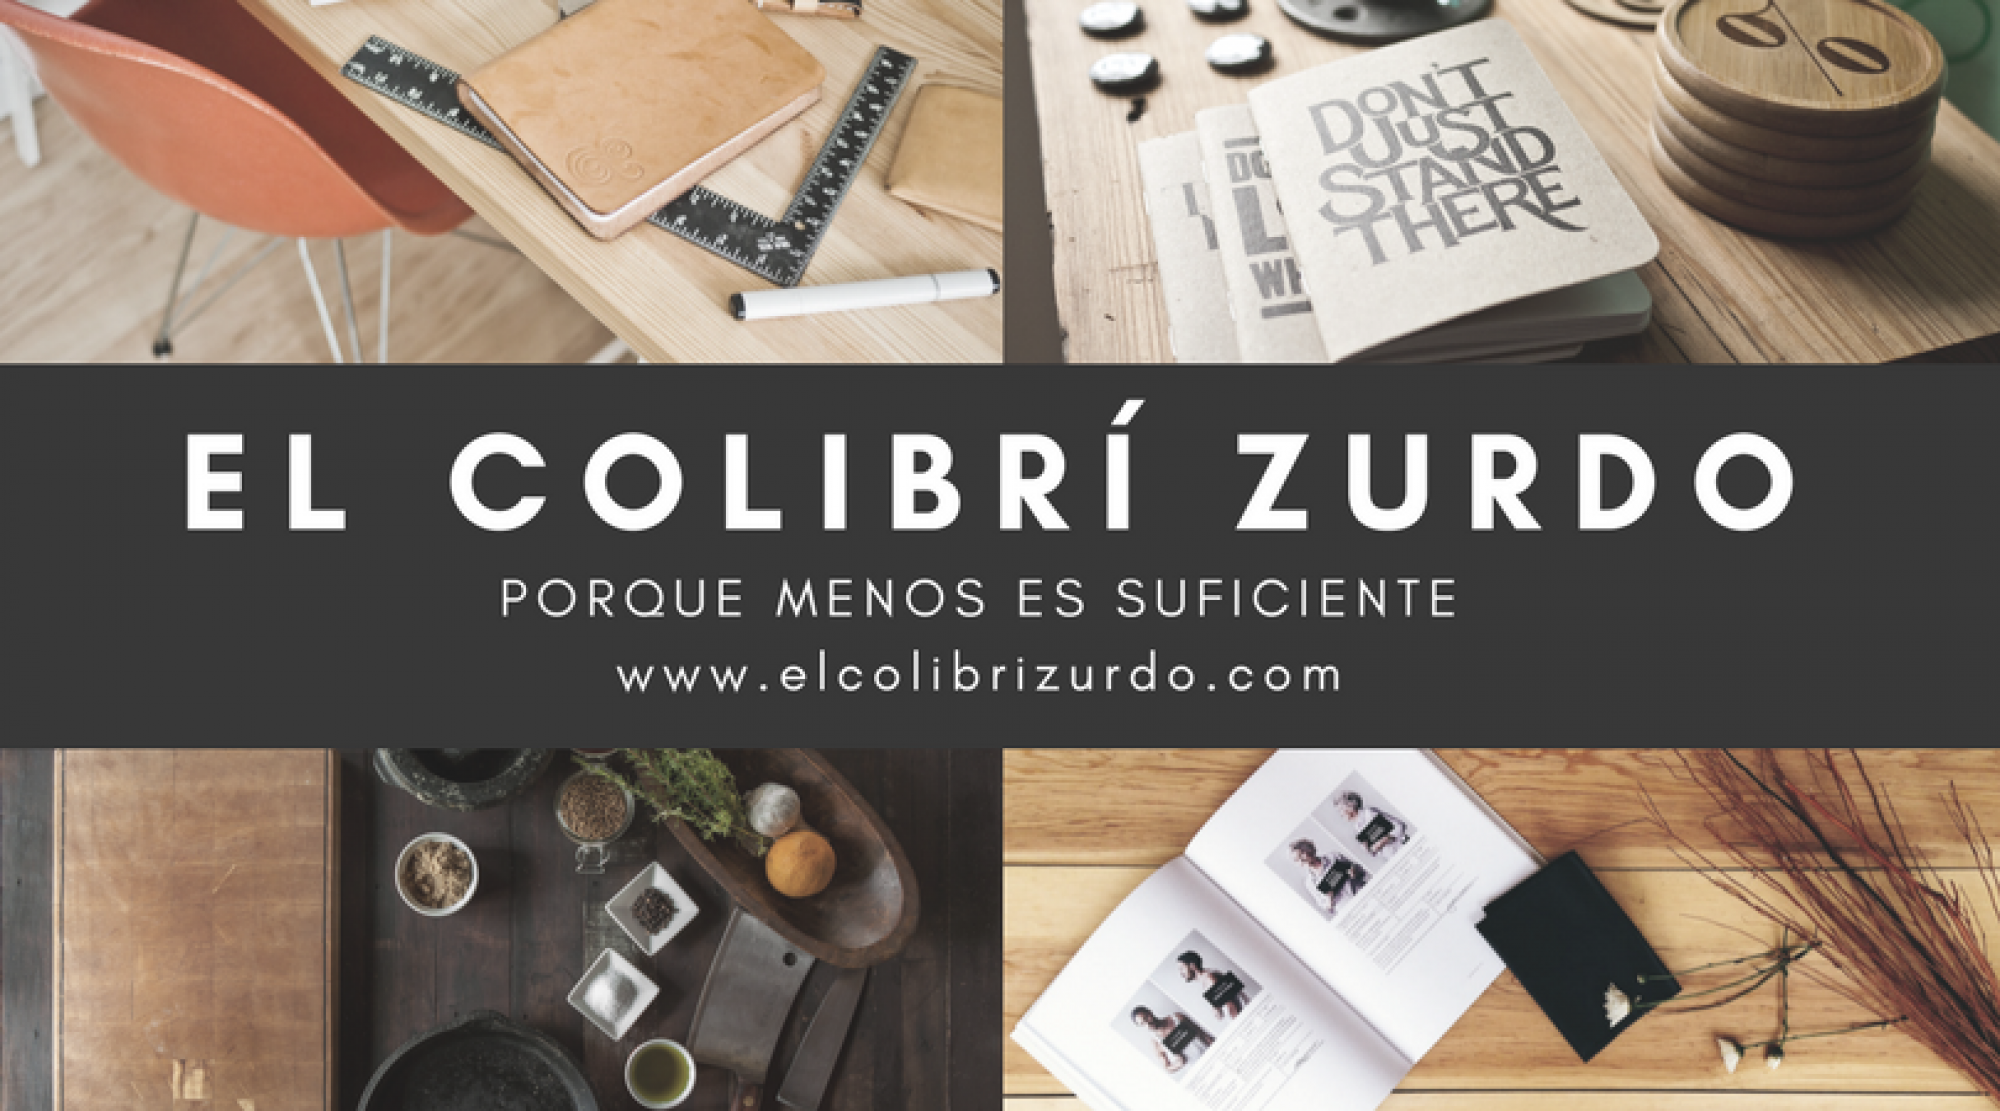 El Colibrí Zurdo